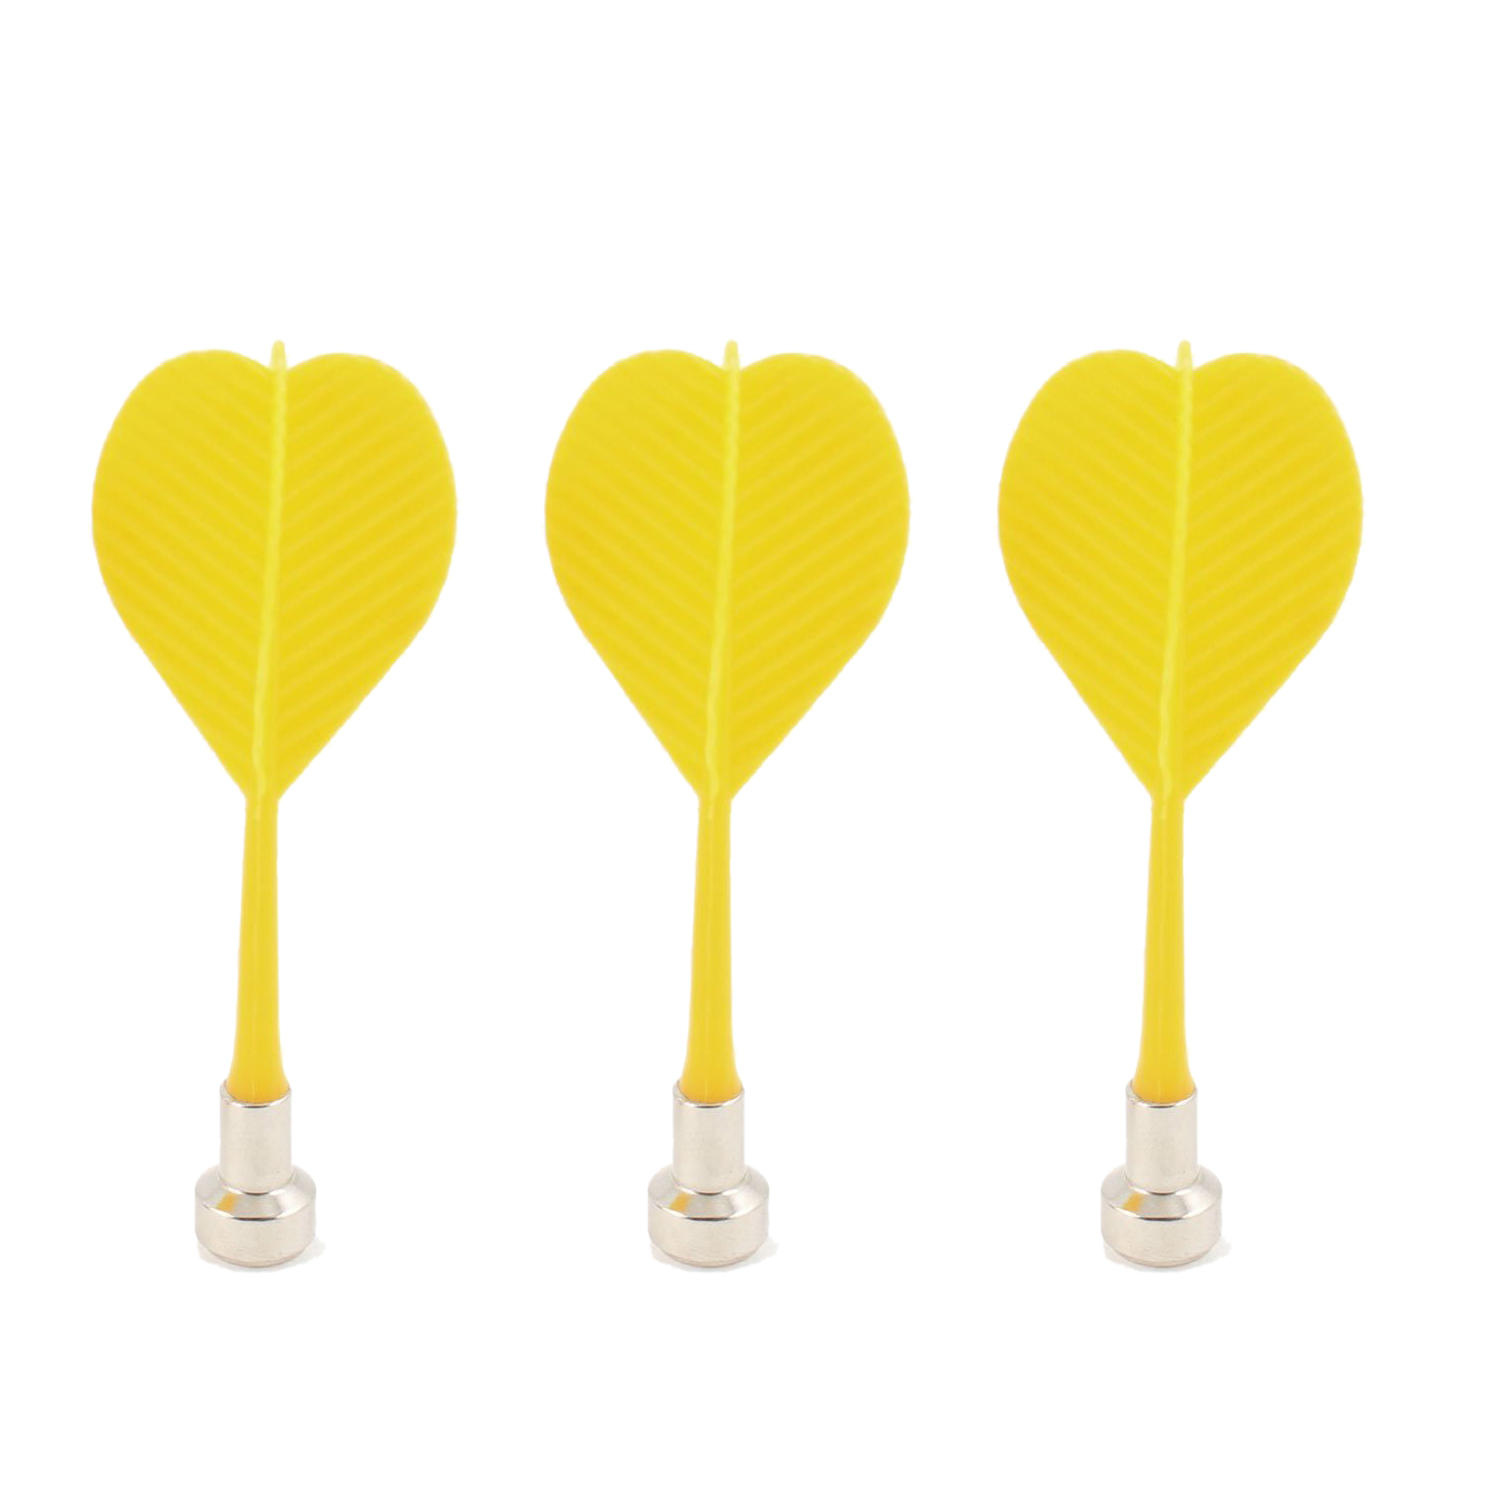 5pcs( 3pcs BullsEye Target Game Plastic Magnetic Flat Tipped Darts-Yellow